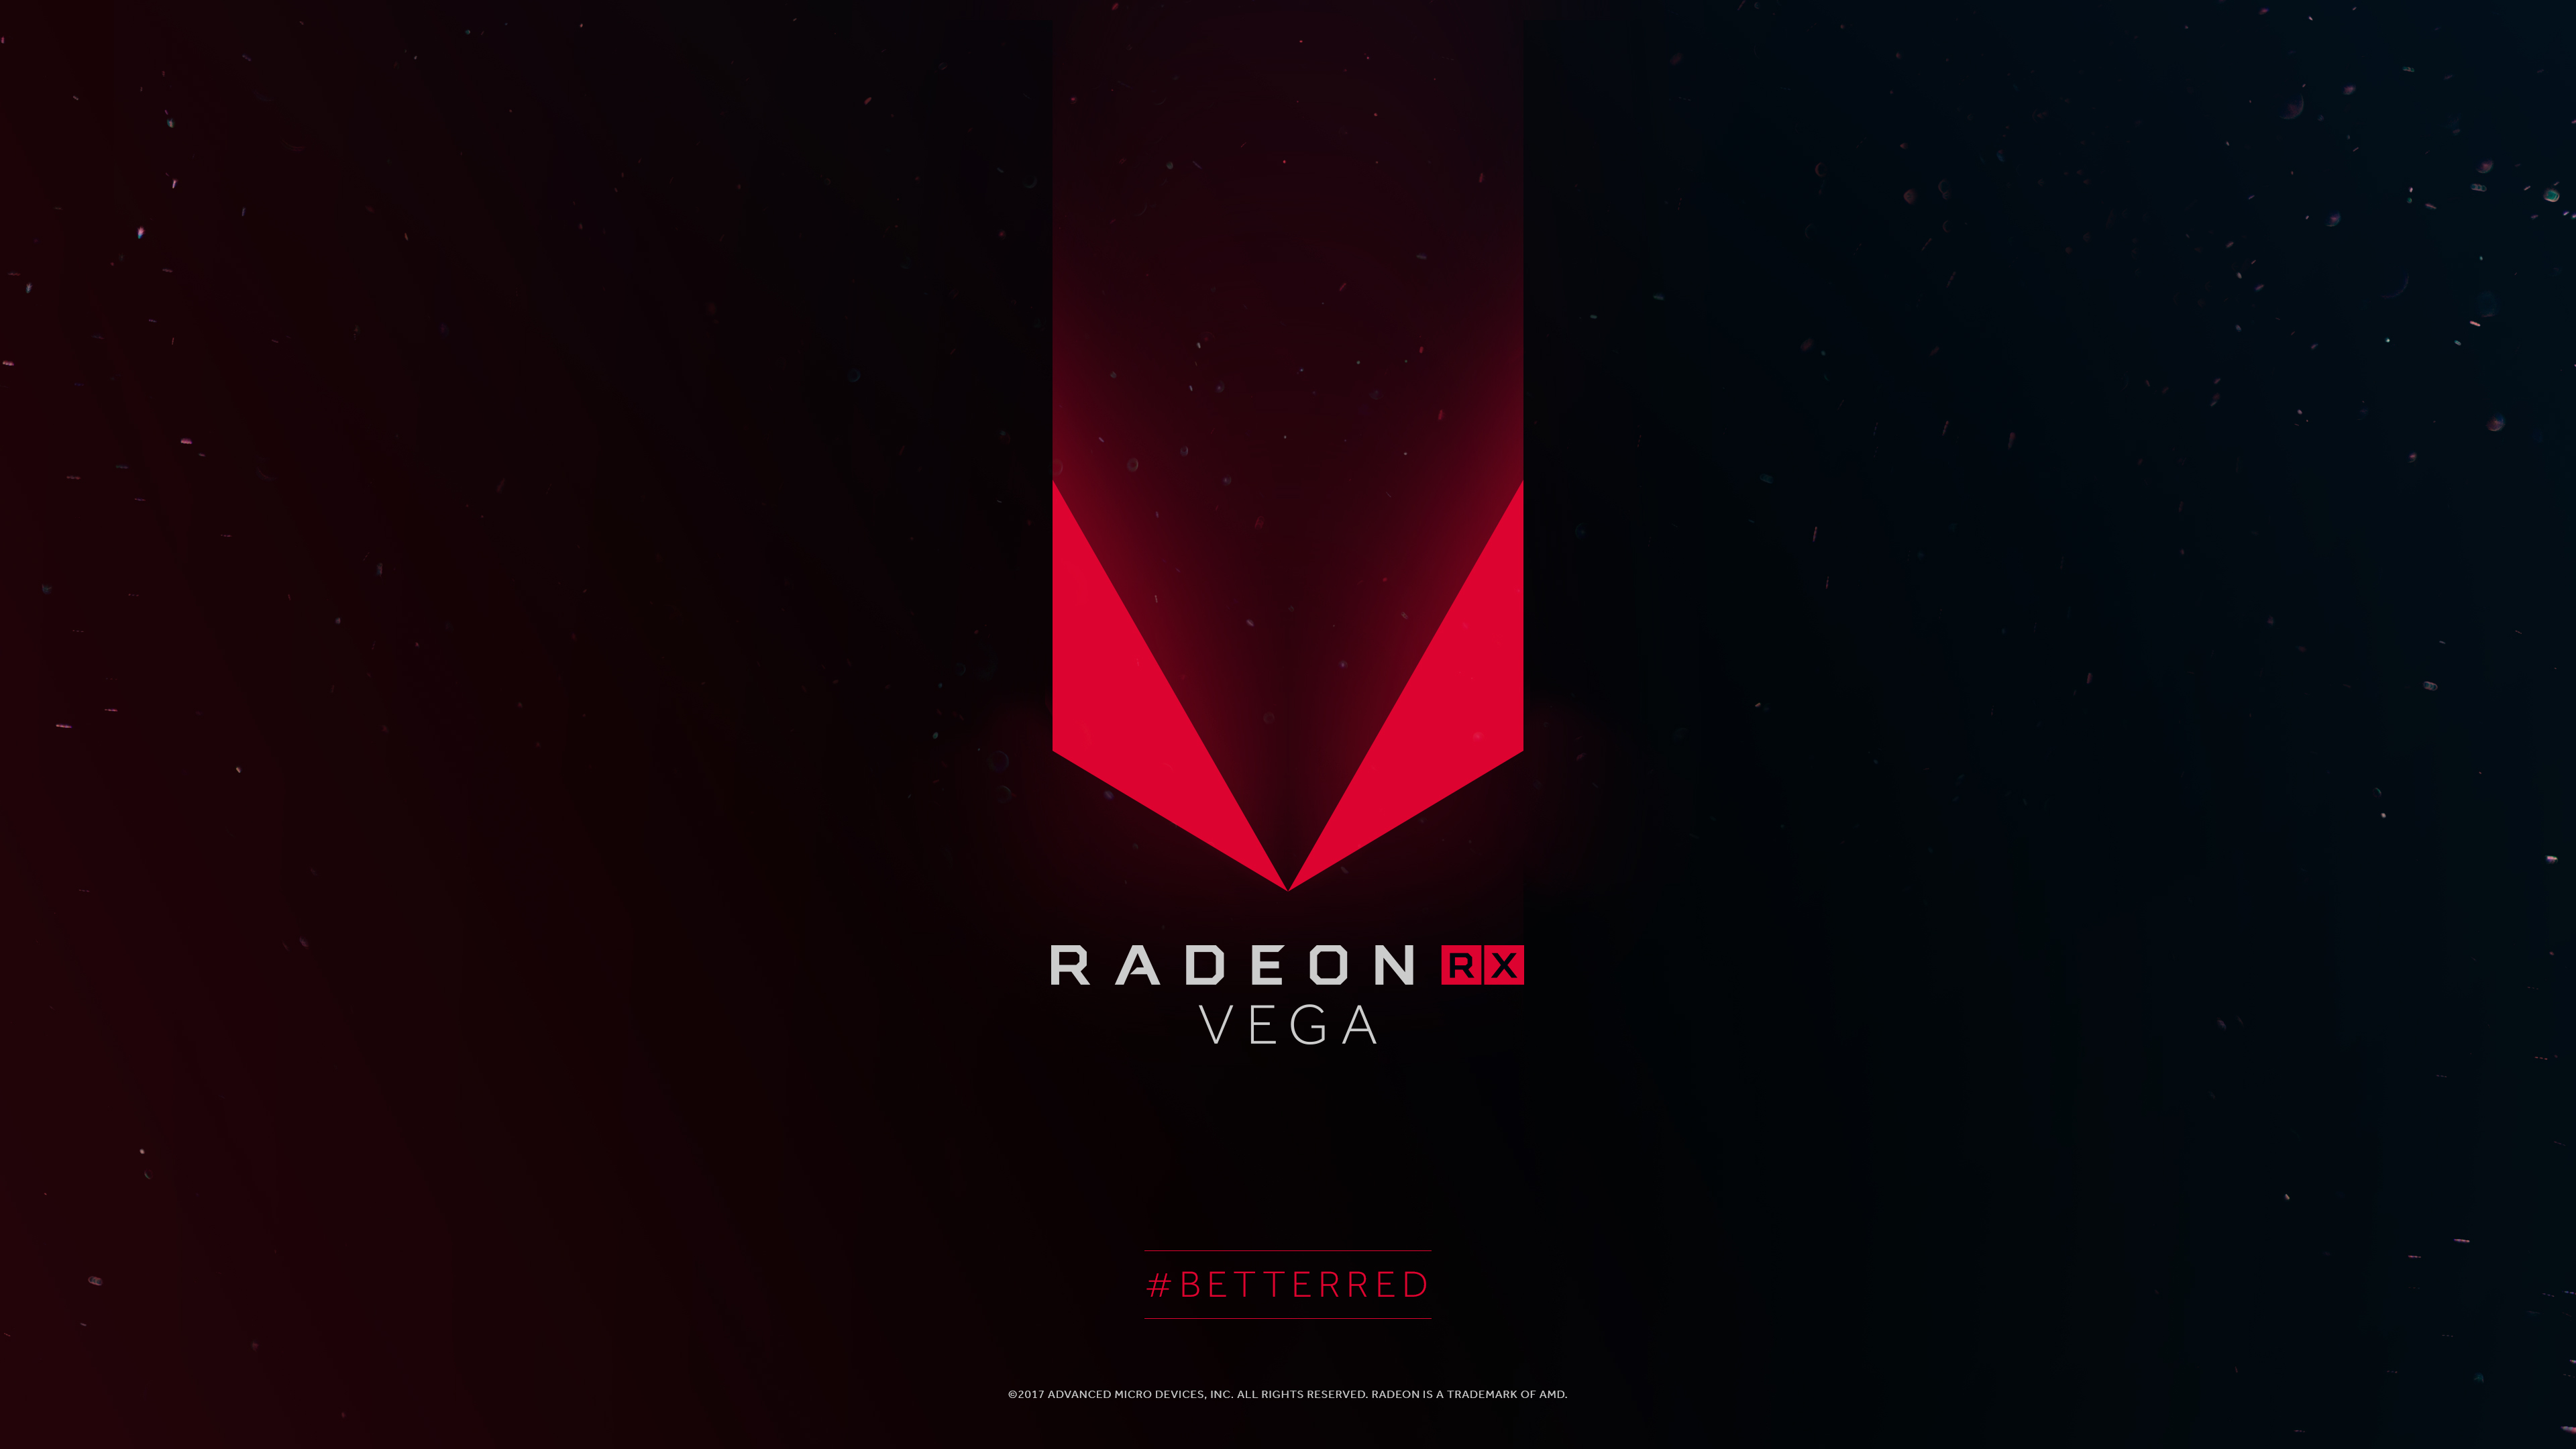 amd wallpapers teamstealth - photo #18